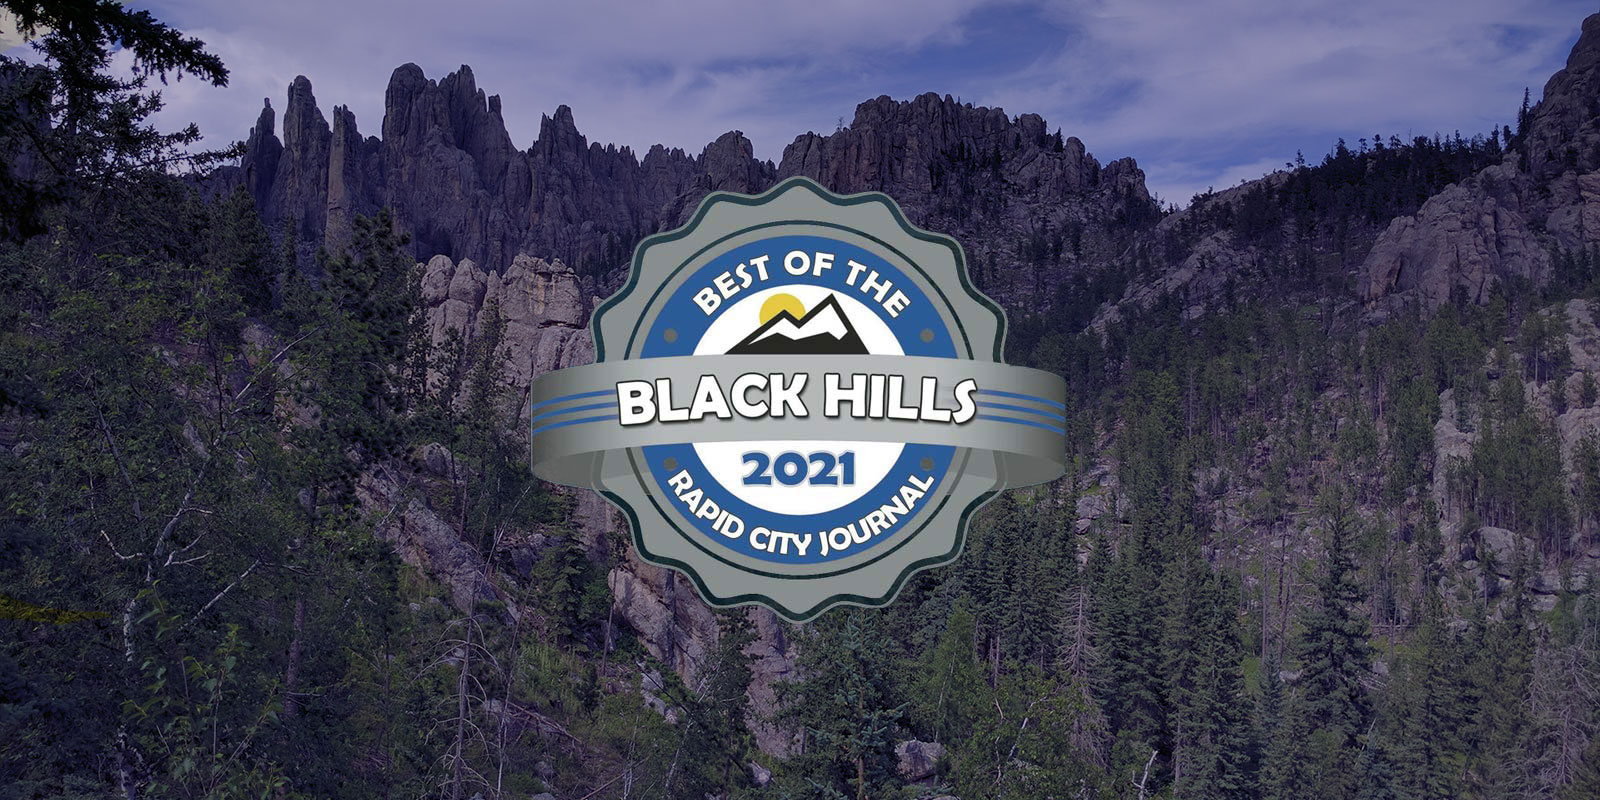 Only a few days left to vote us the best mortgage lender in the Black Hills